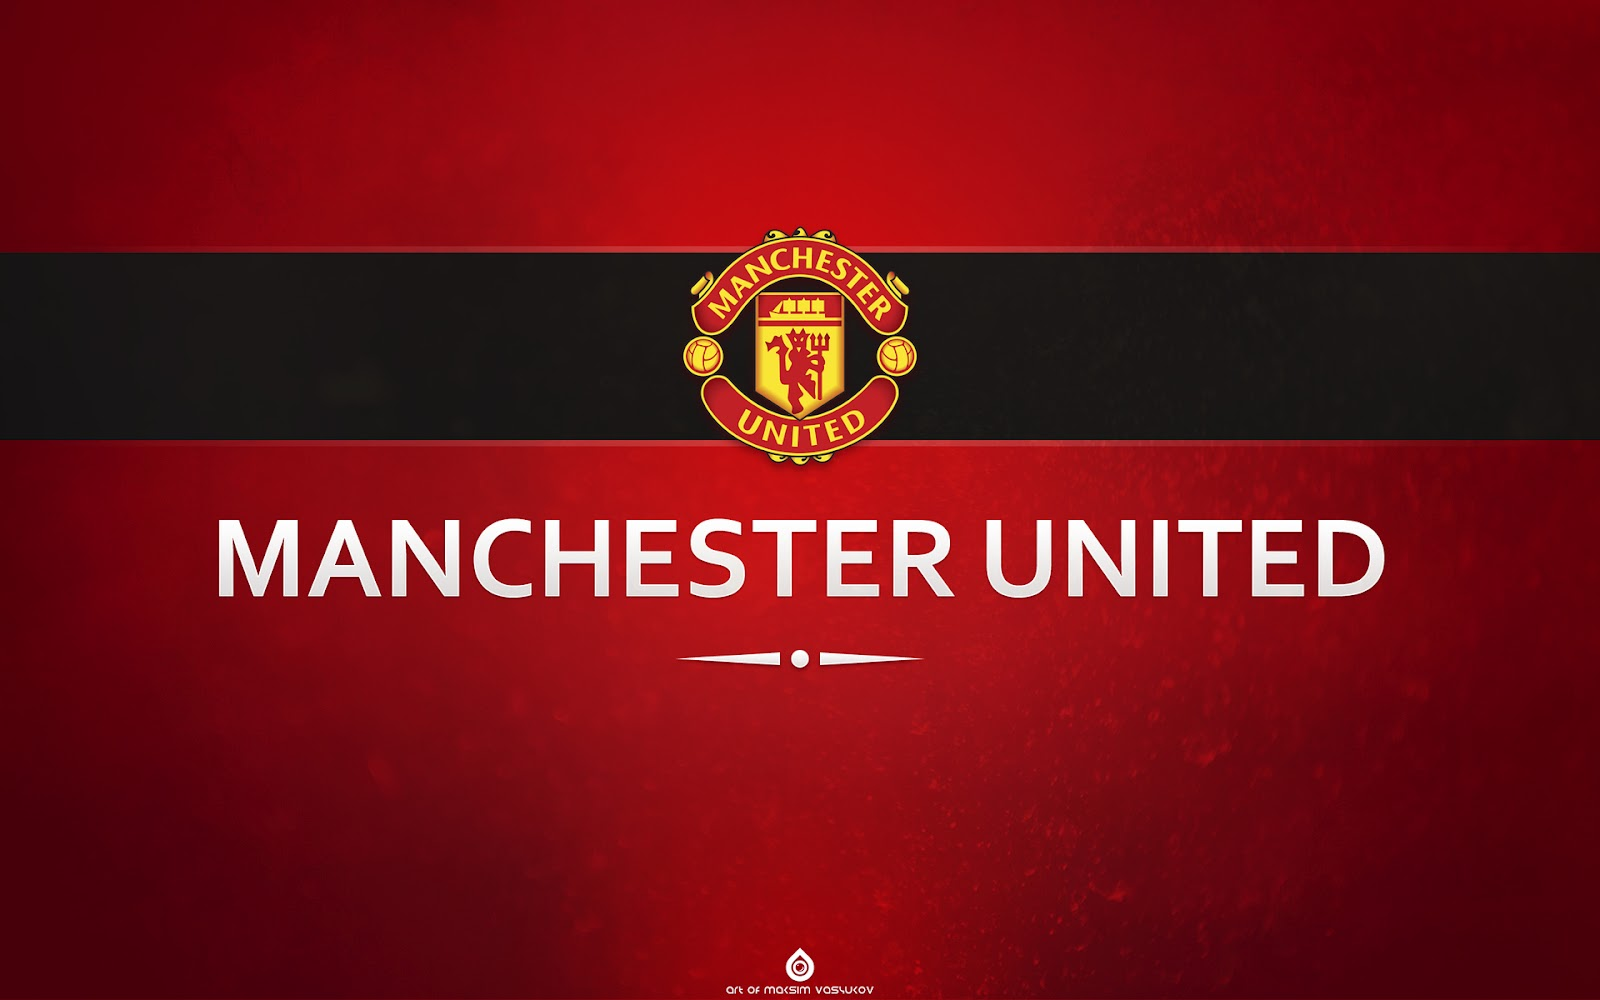 [Imagen: Manchester-United_Football-Wallpapers_Fo...Futbol.jpg]